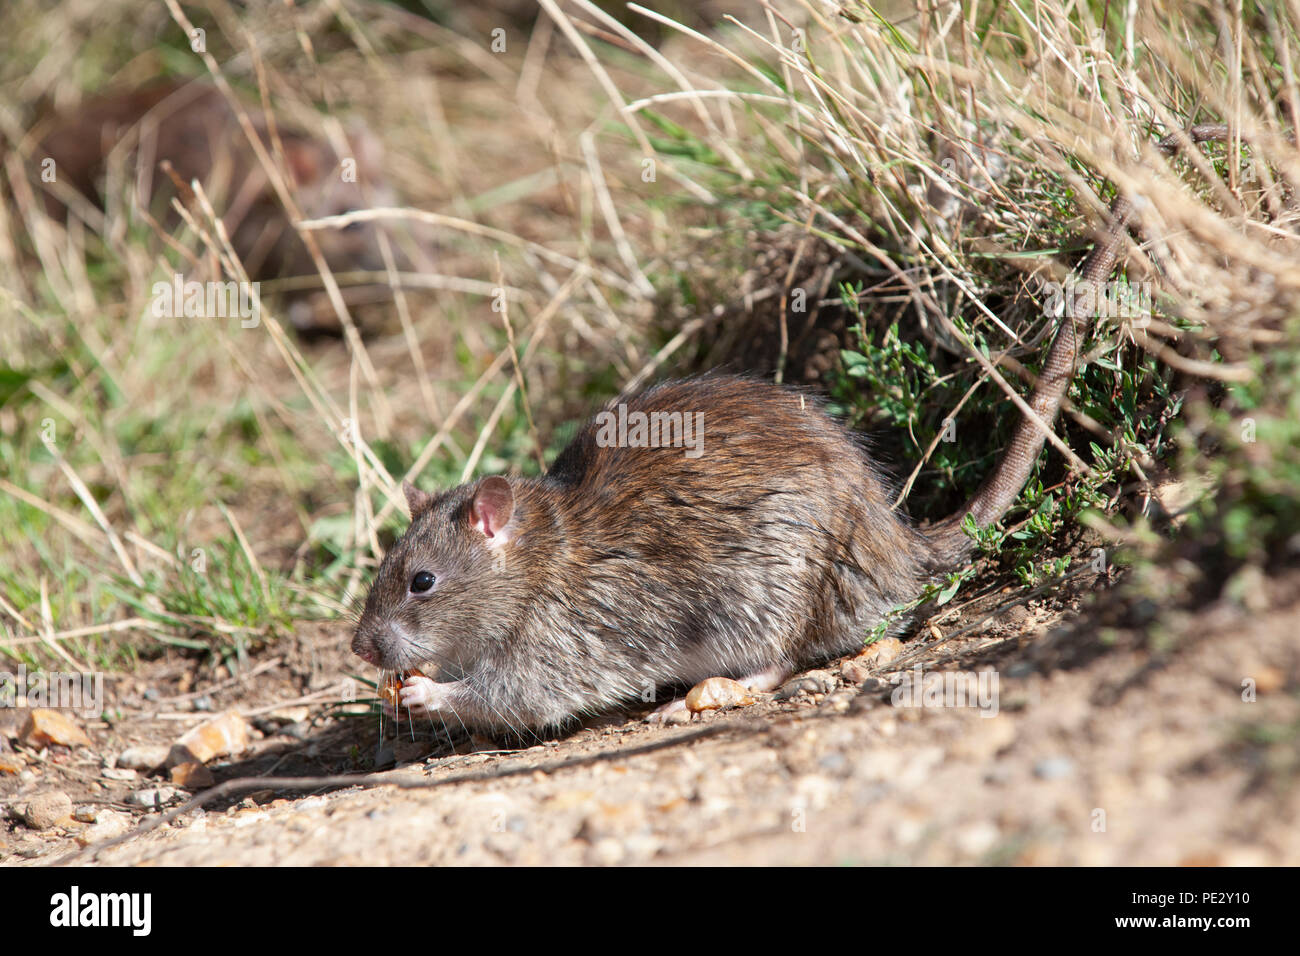 Brown Rat, (Rattus norvegicus), feeding on waste food, Brent Reservoir, also known as Welsh Harp Reservoir, Brent, London, United Kingdom - Stock Image